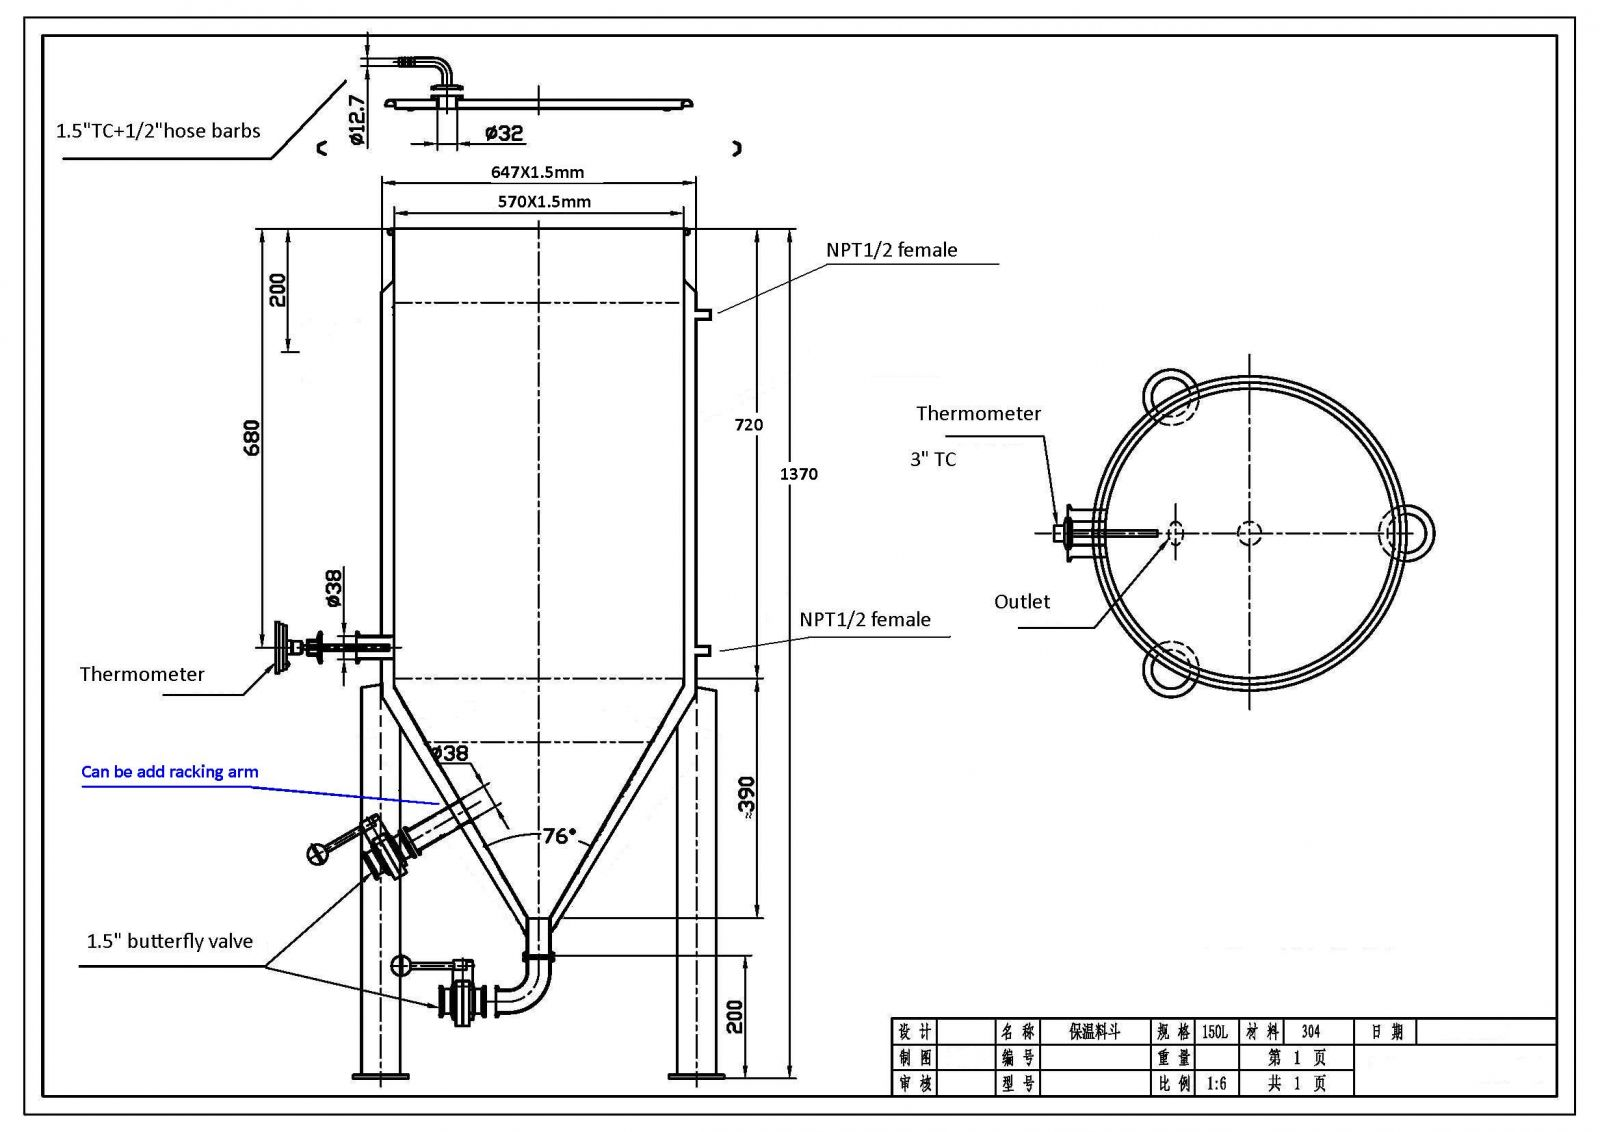 200L fermenter with cooling jacket